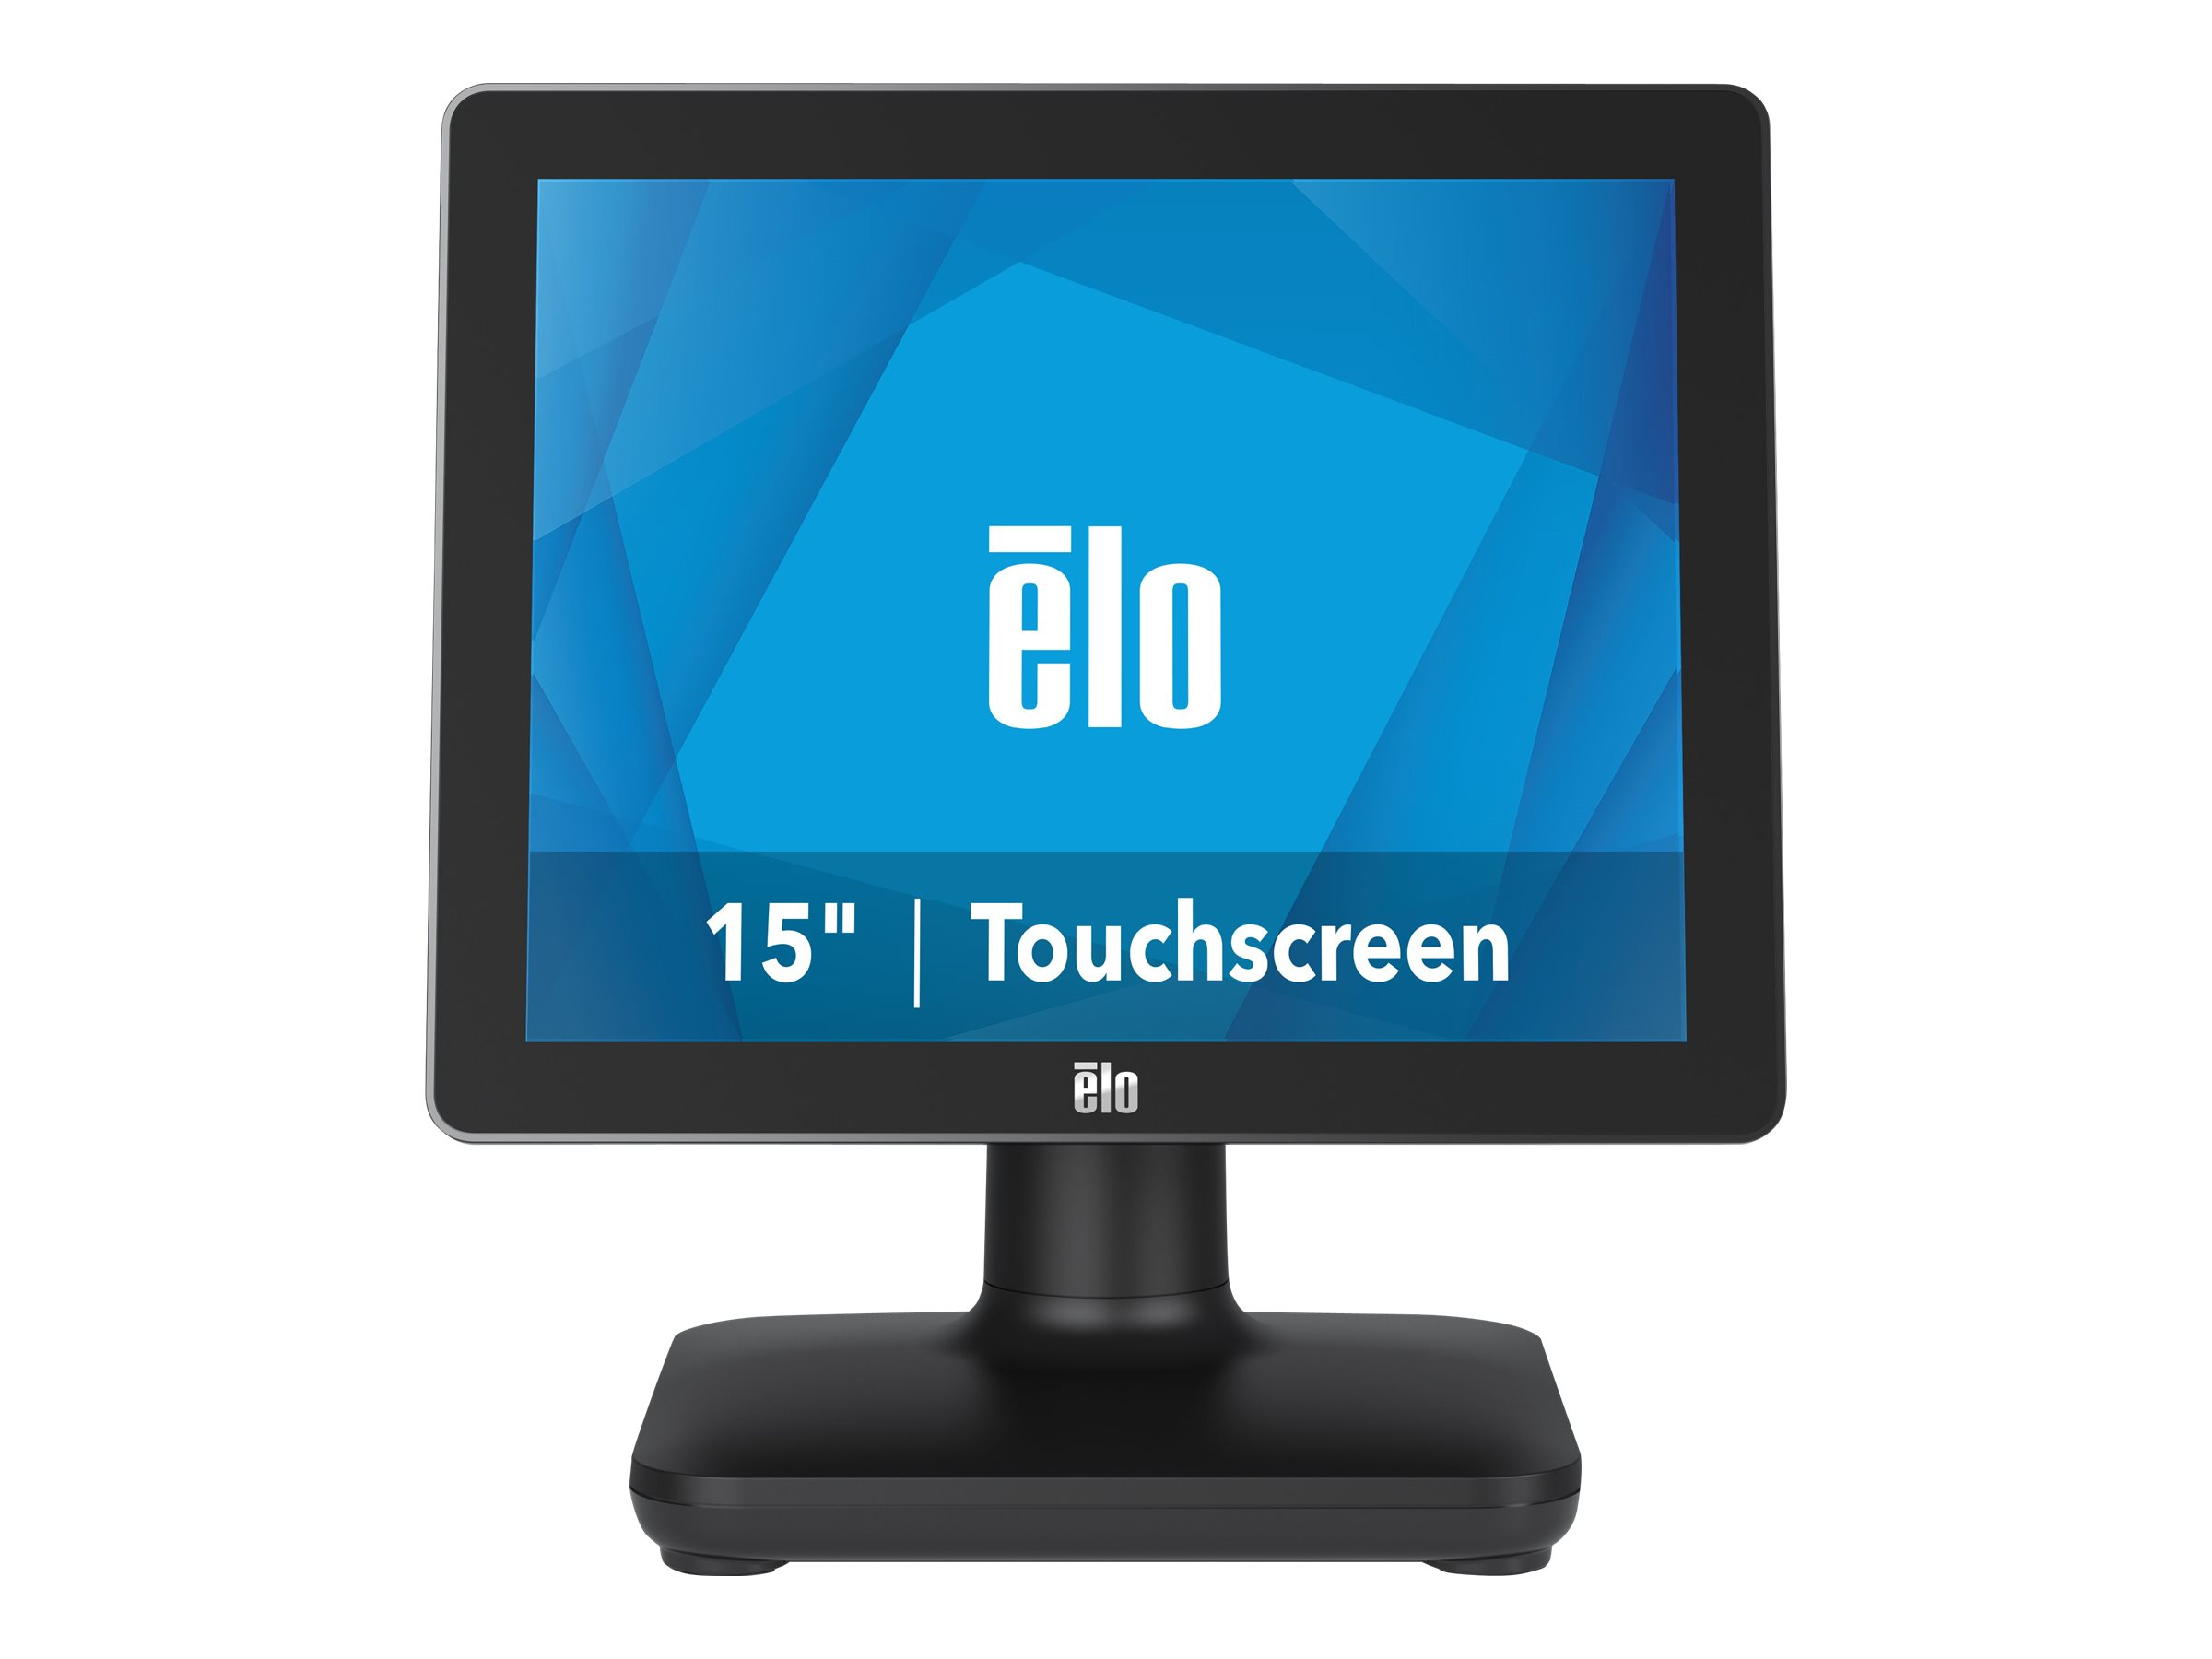 EloPOS System - with I/O Hub Stand - all-in-one - Core i3 8100T 3.1 GHz - 4 GB - SSD 128 GB - LED 15